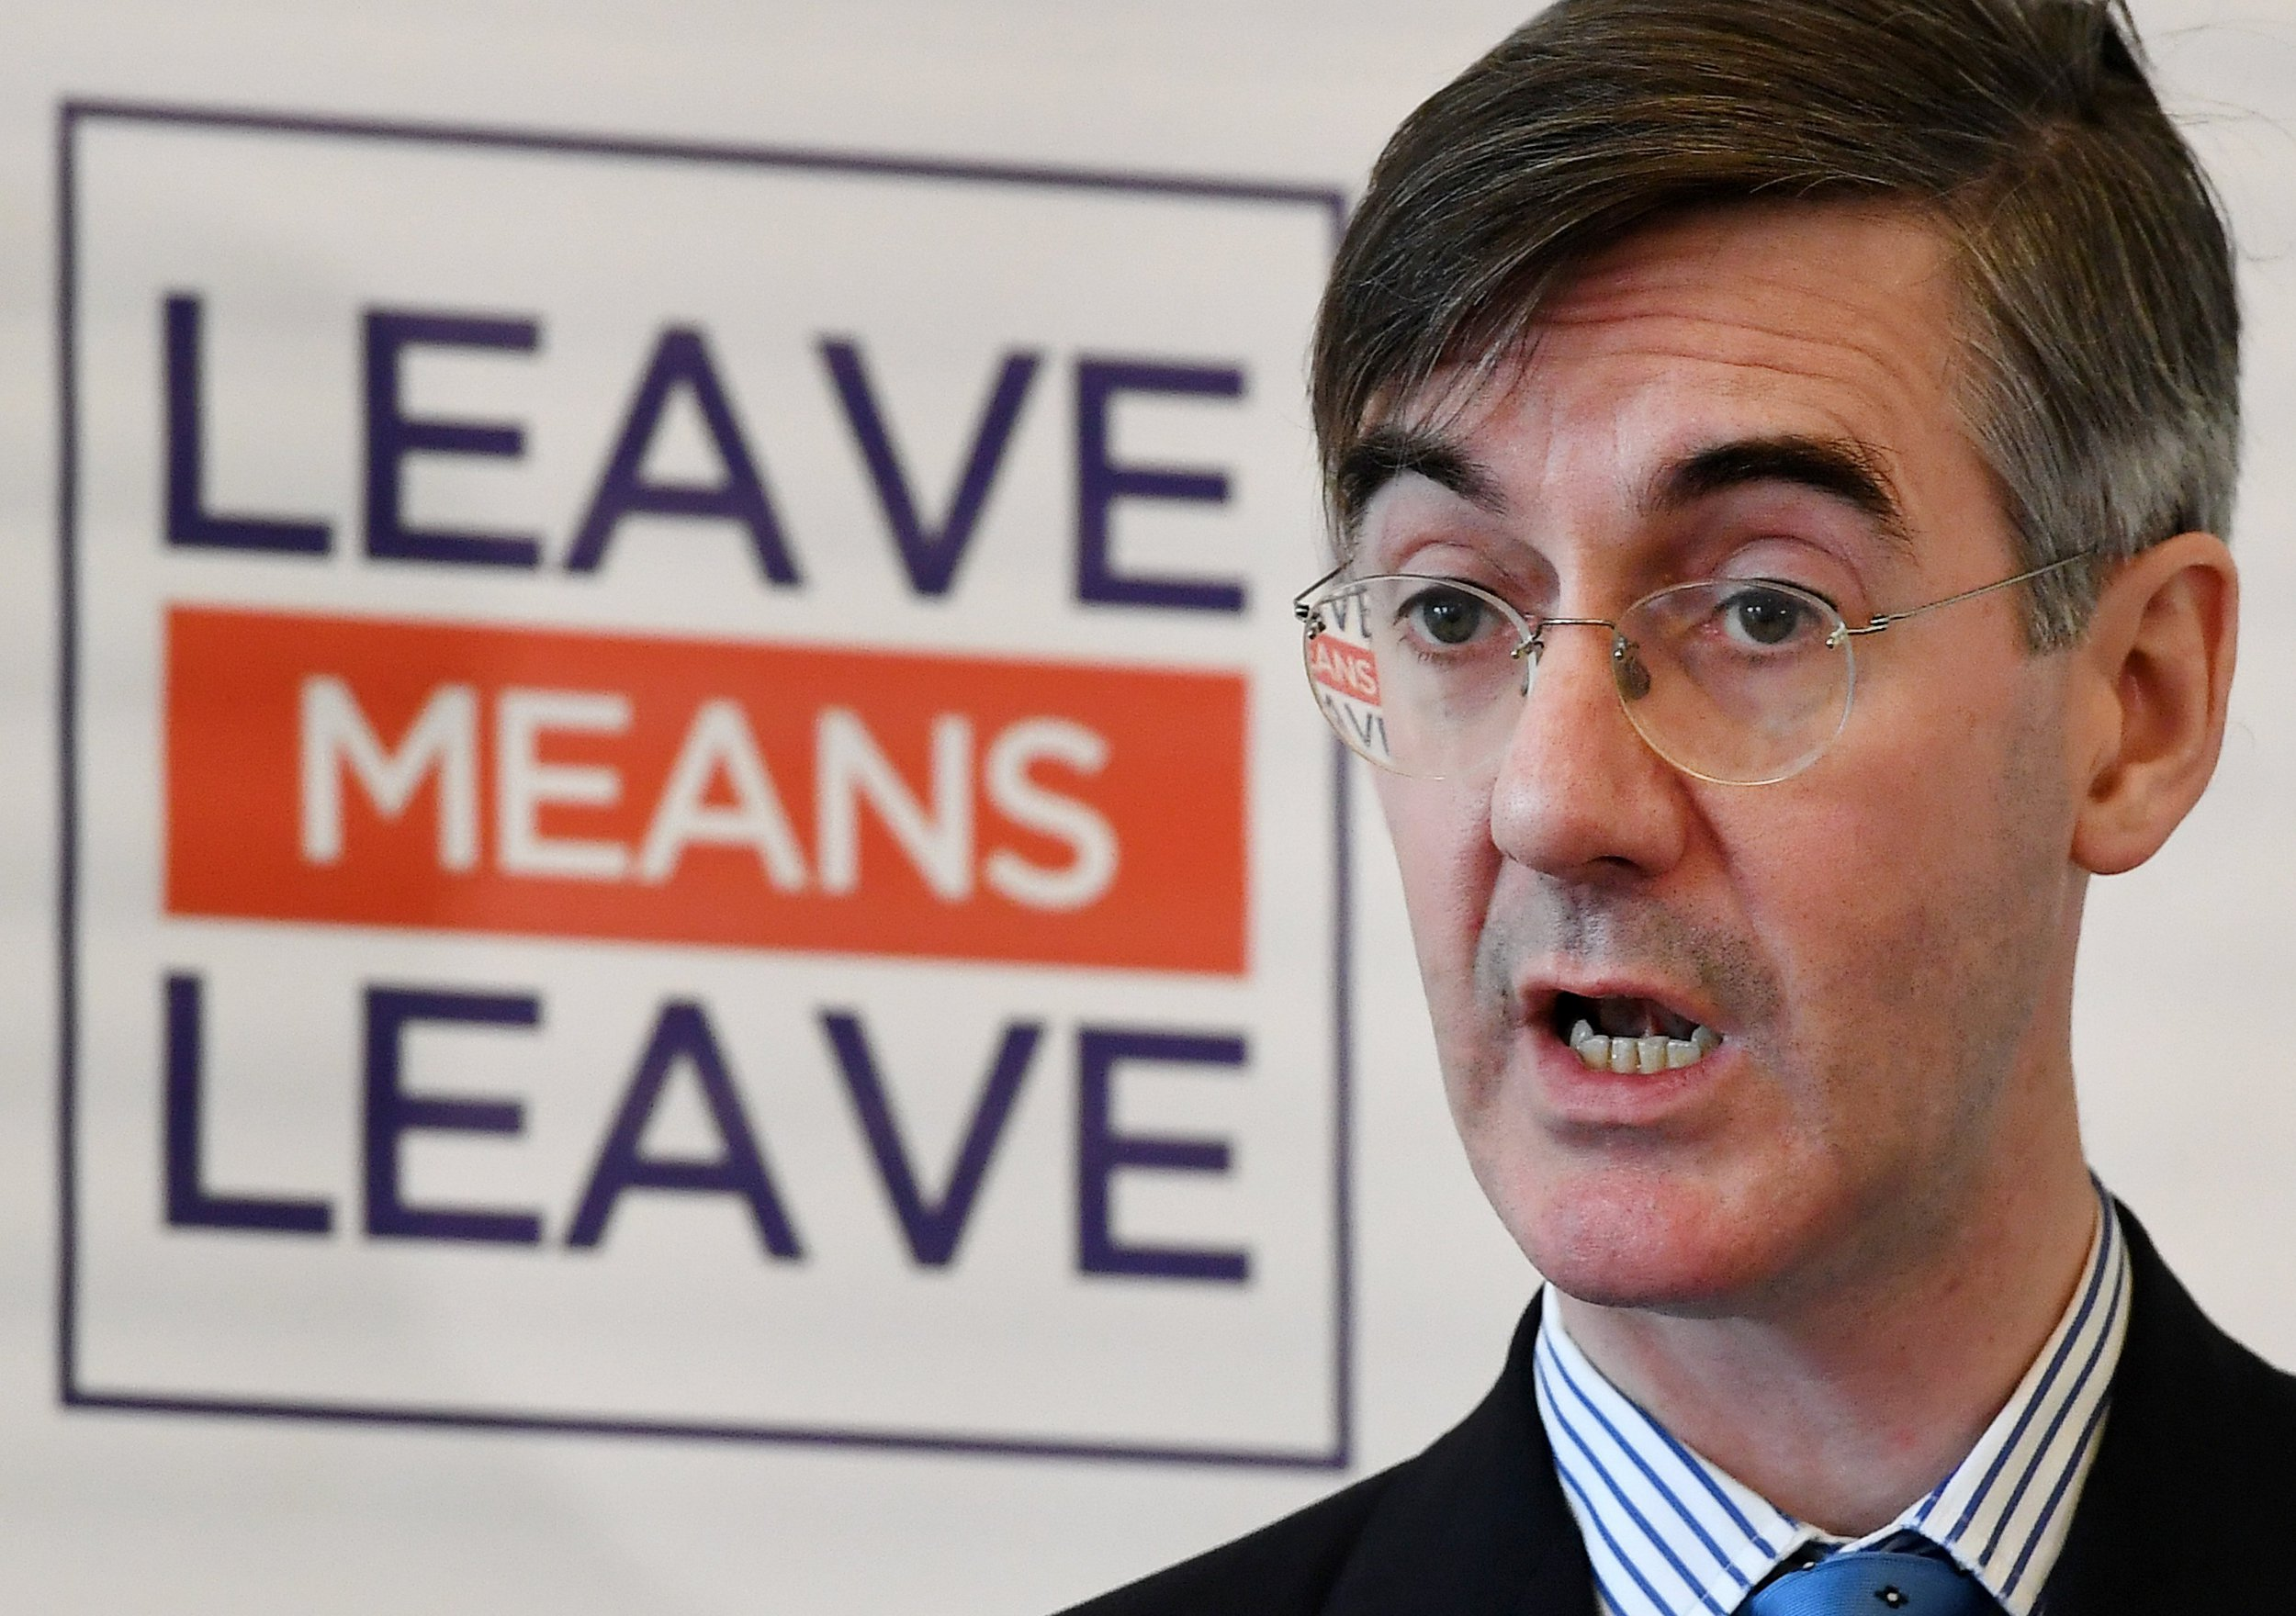 epa06631838 British Conservative Member of Parliament and Brexit hard liner Jacob Rees Mogg delivers a speech on Brexit in London, Britain, 27 March 2018. Jacob Rees Mogg called for the country to come together to embrace the economic opportunities of independence from Brussels. EPA/ANDY RAIN